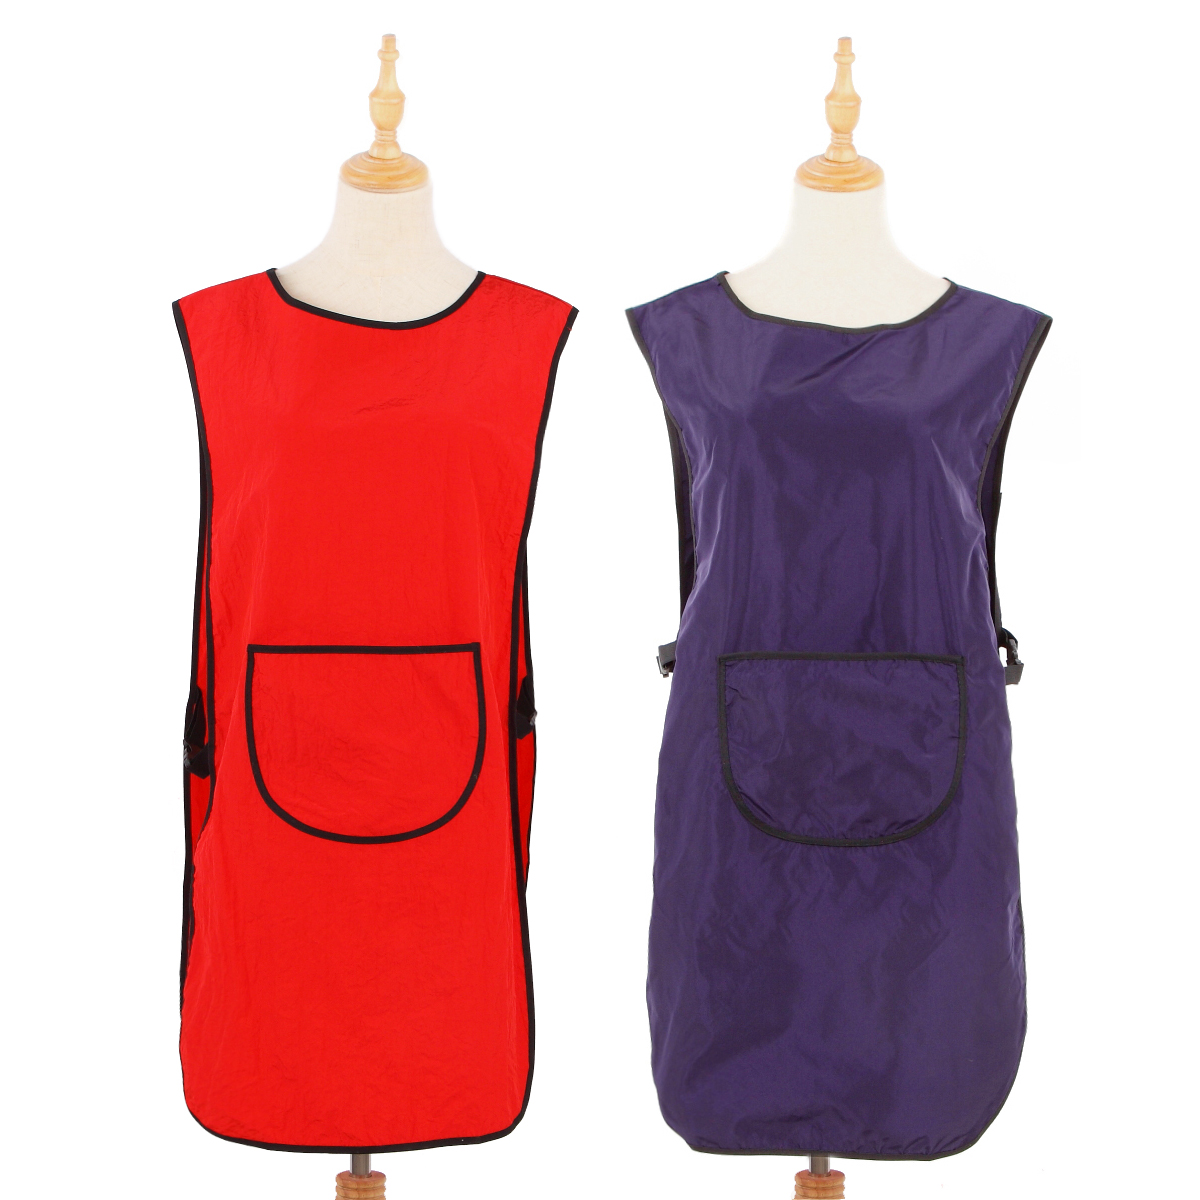 1pcs Professional Hairdressing Collar Apron Fashion Hair Cutting Bib Barber Styling Salon Hairdresser Household Waist Cloth Chills And Pains Hair Care & Styling Styling Tools